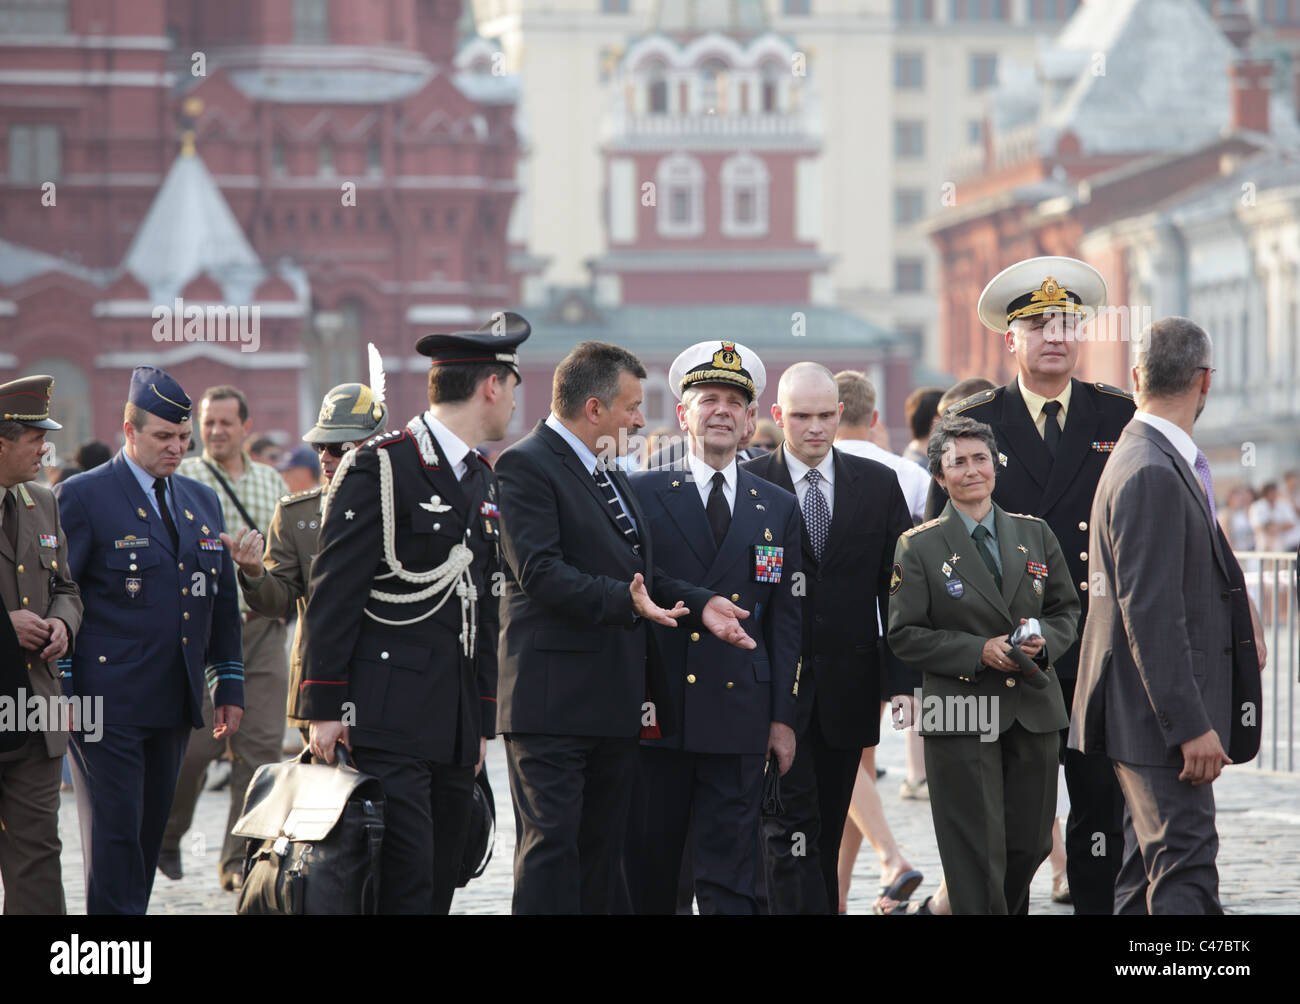 NATO delegation in Moscow, Russia - Stock Image